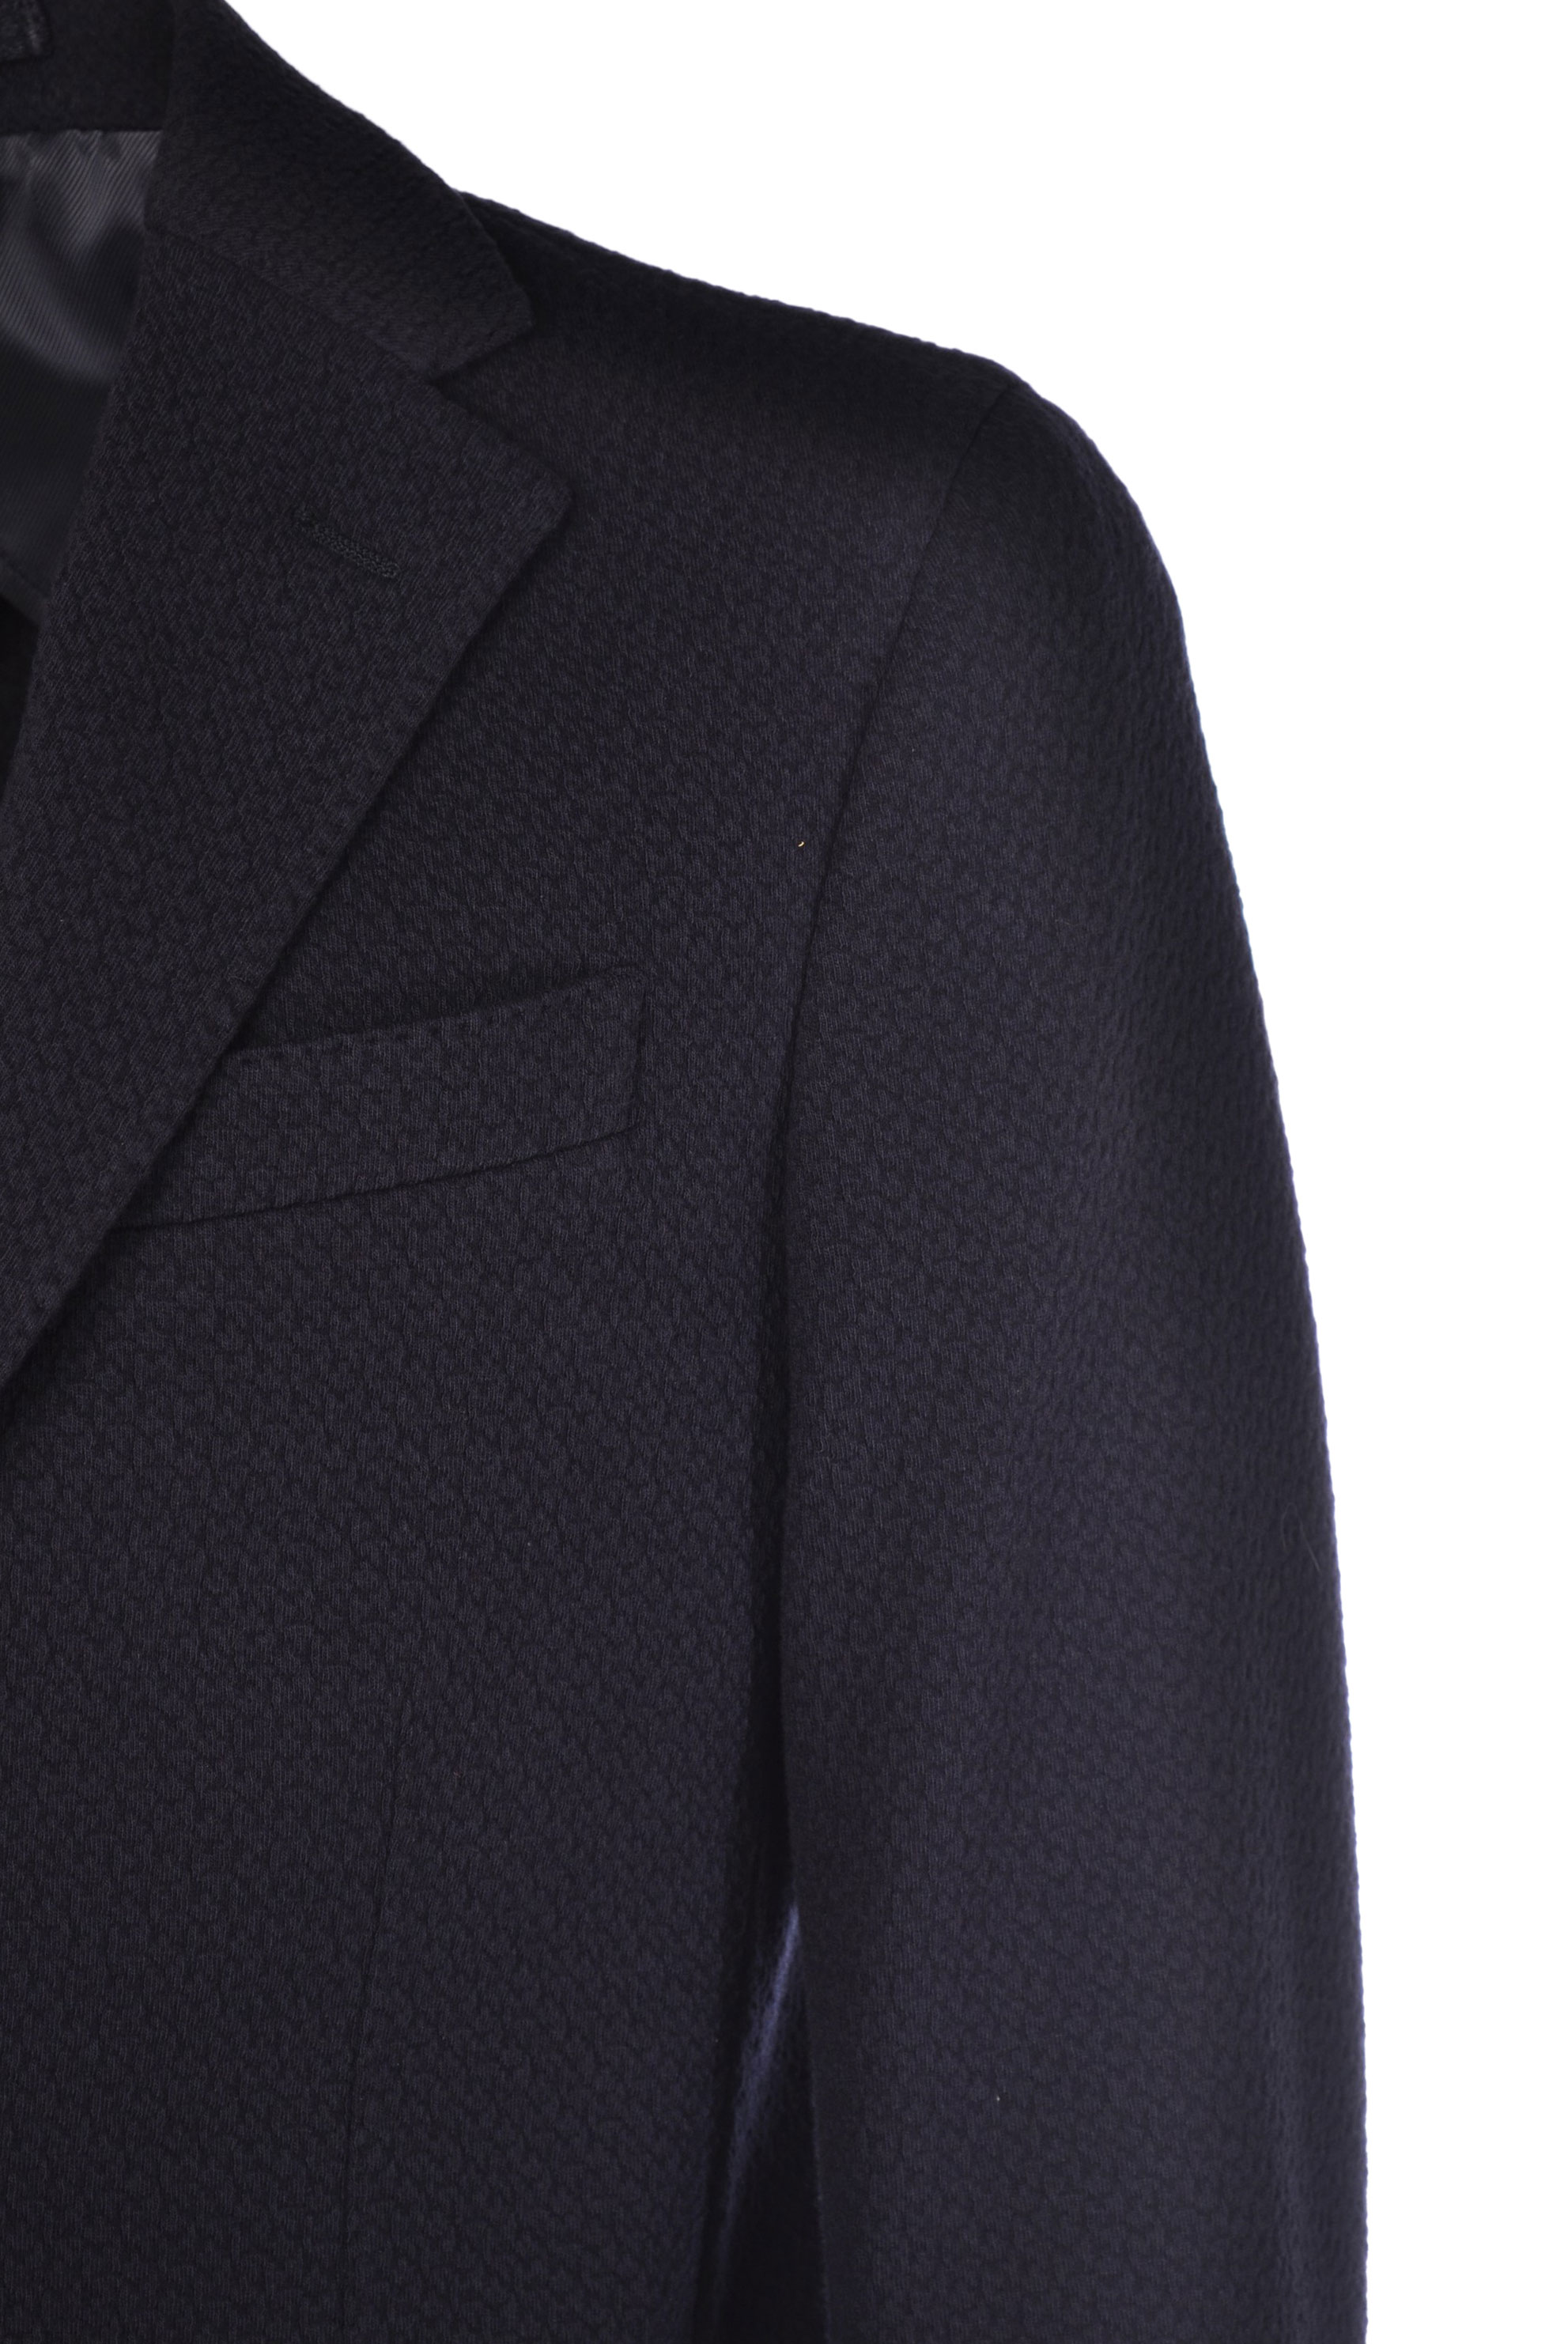 Corneliani Collection - Giacche